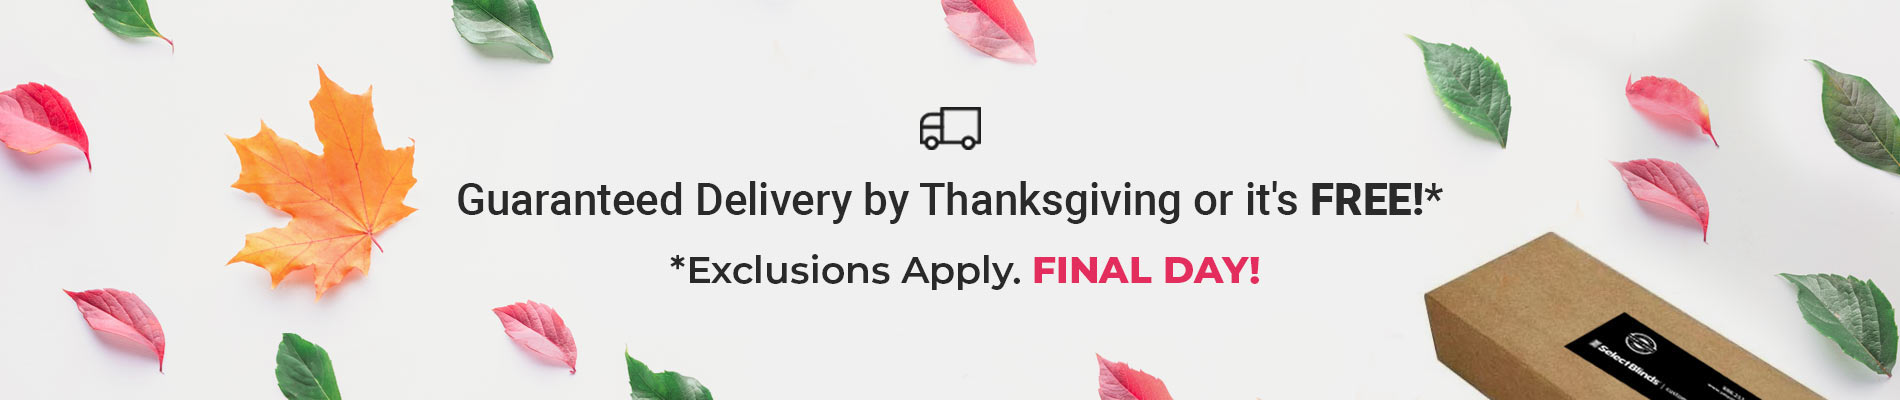 Delivery by Thanksgiving or it's FREE